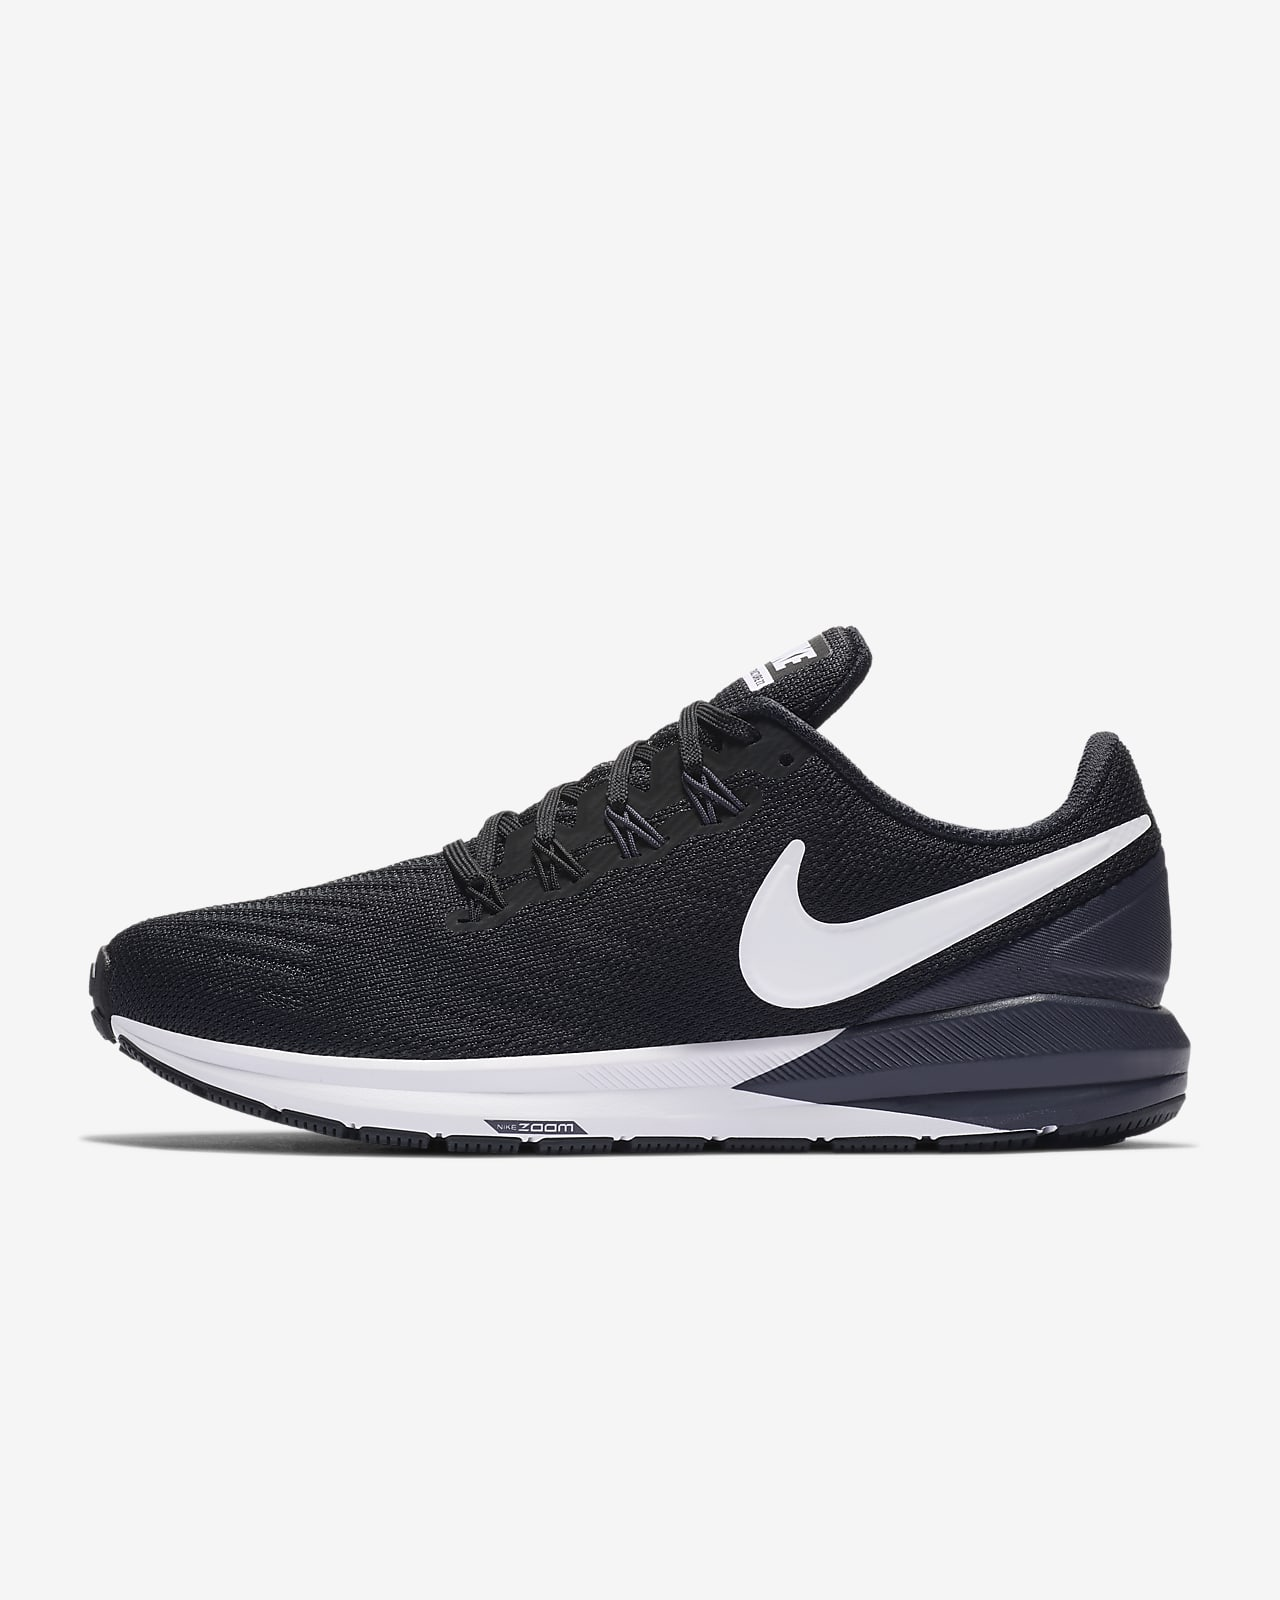 Nike Air Zoom Structure 22 Women's Running Shoes